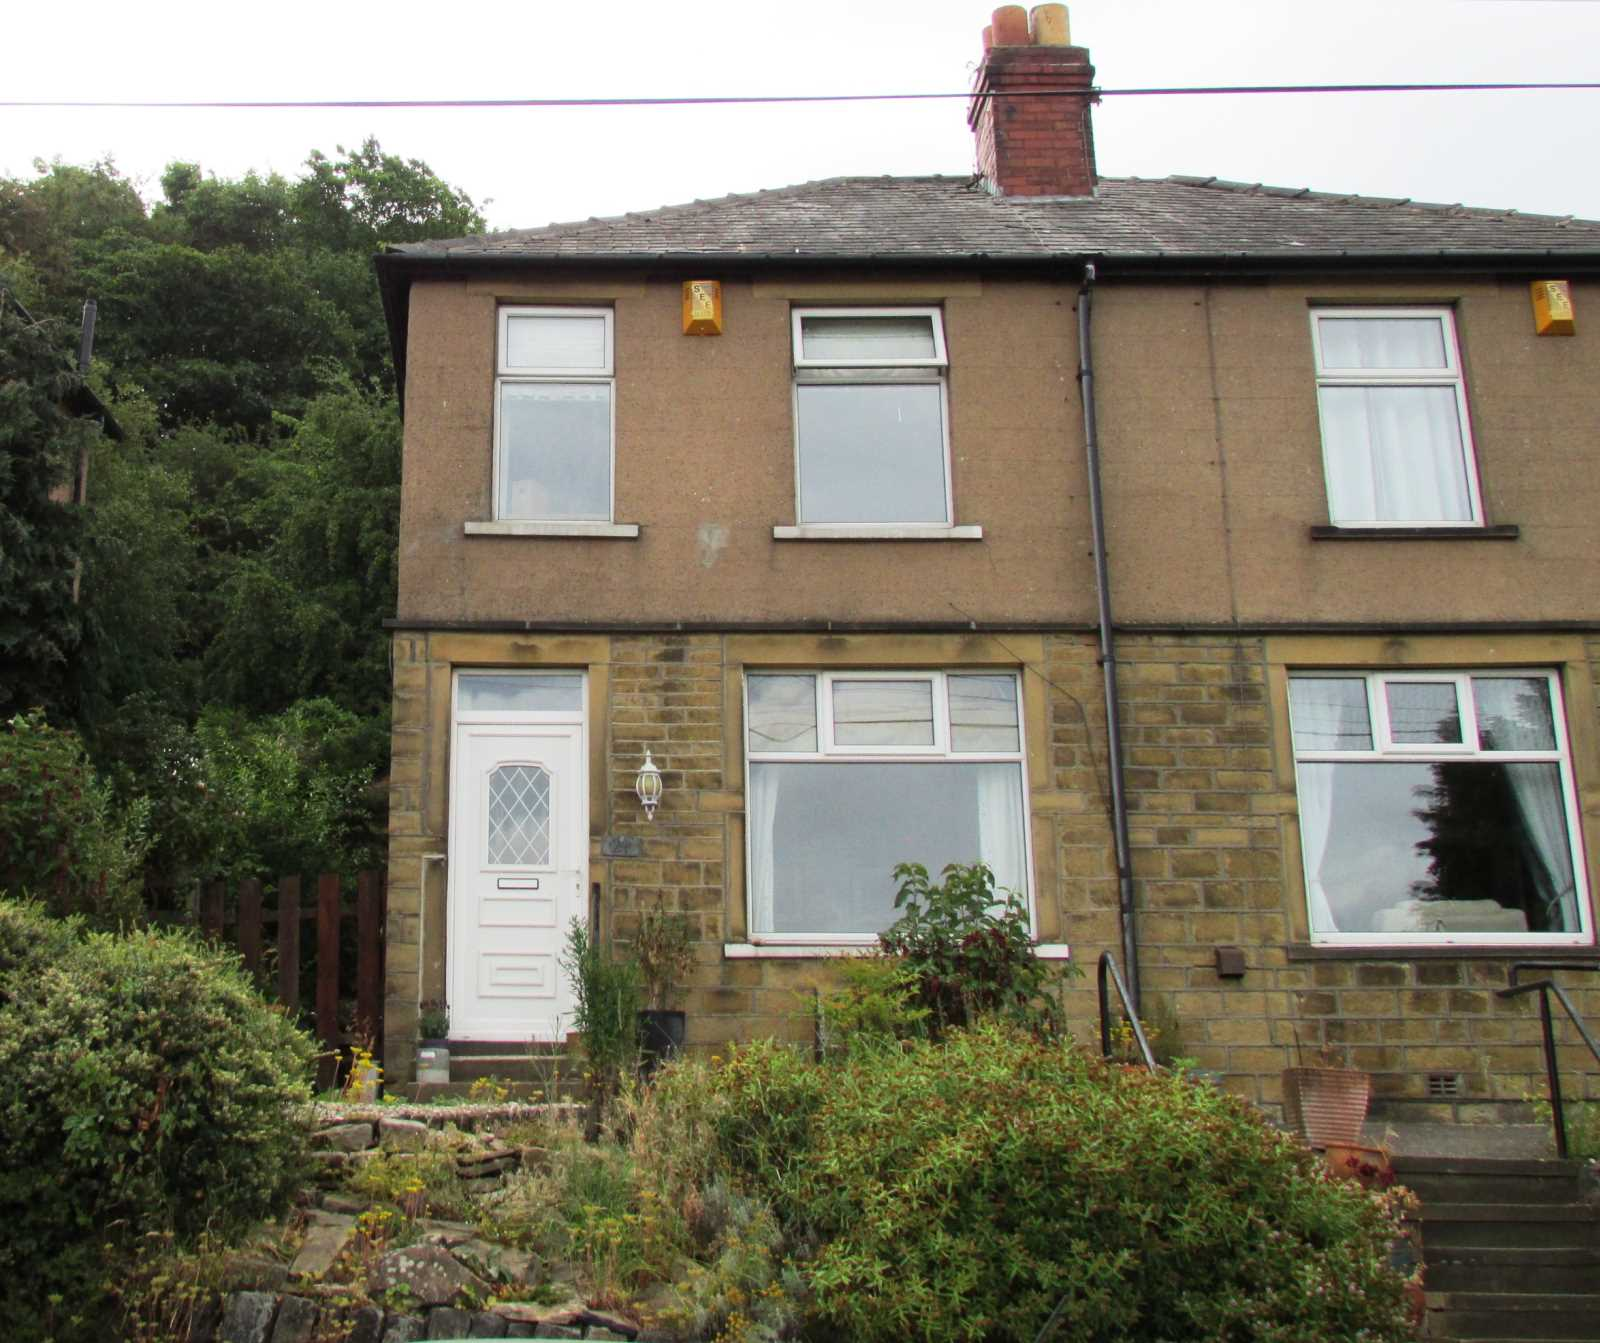 24 Forest Road, Almondbury HD5 8EU